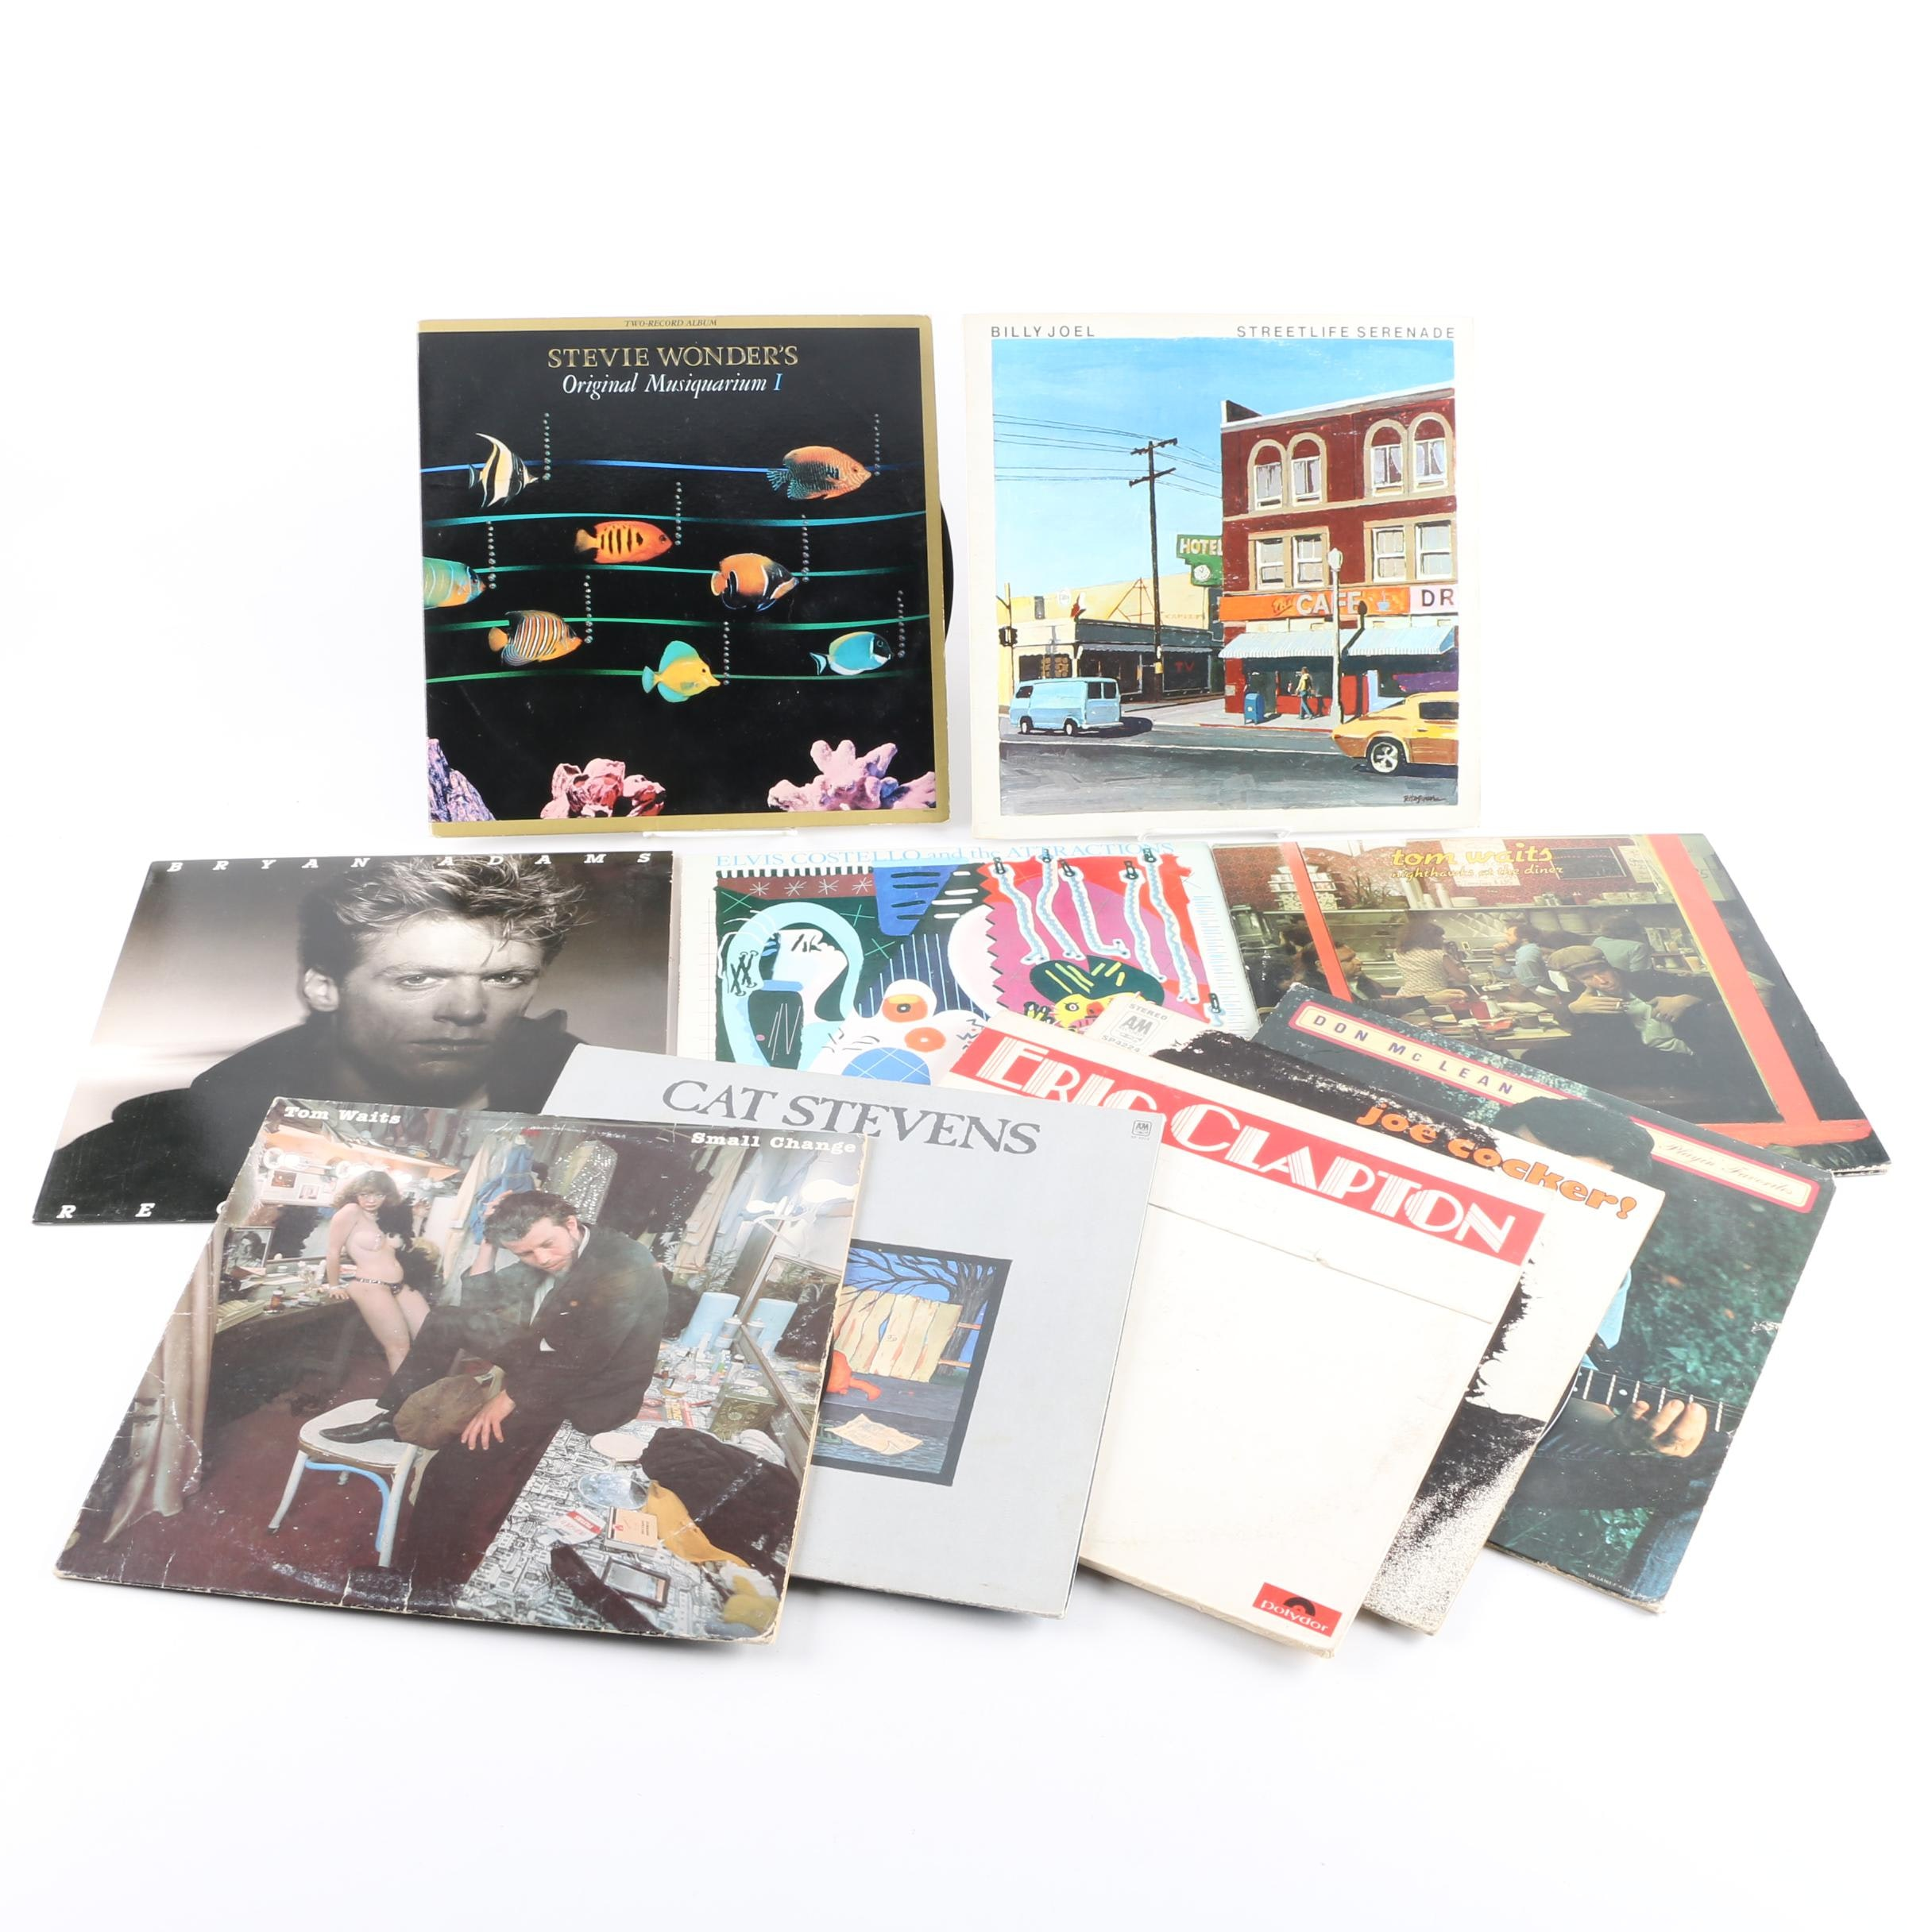 Eric Clapton, Tom Waits, Cat Stevens, Elvis Costello and Other LPs